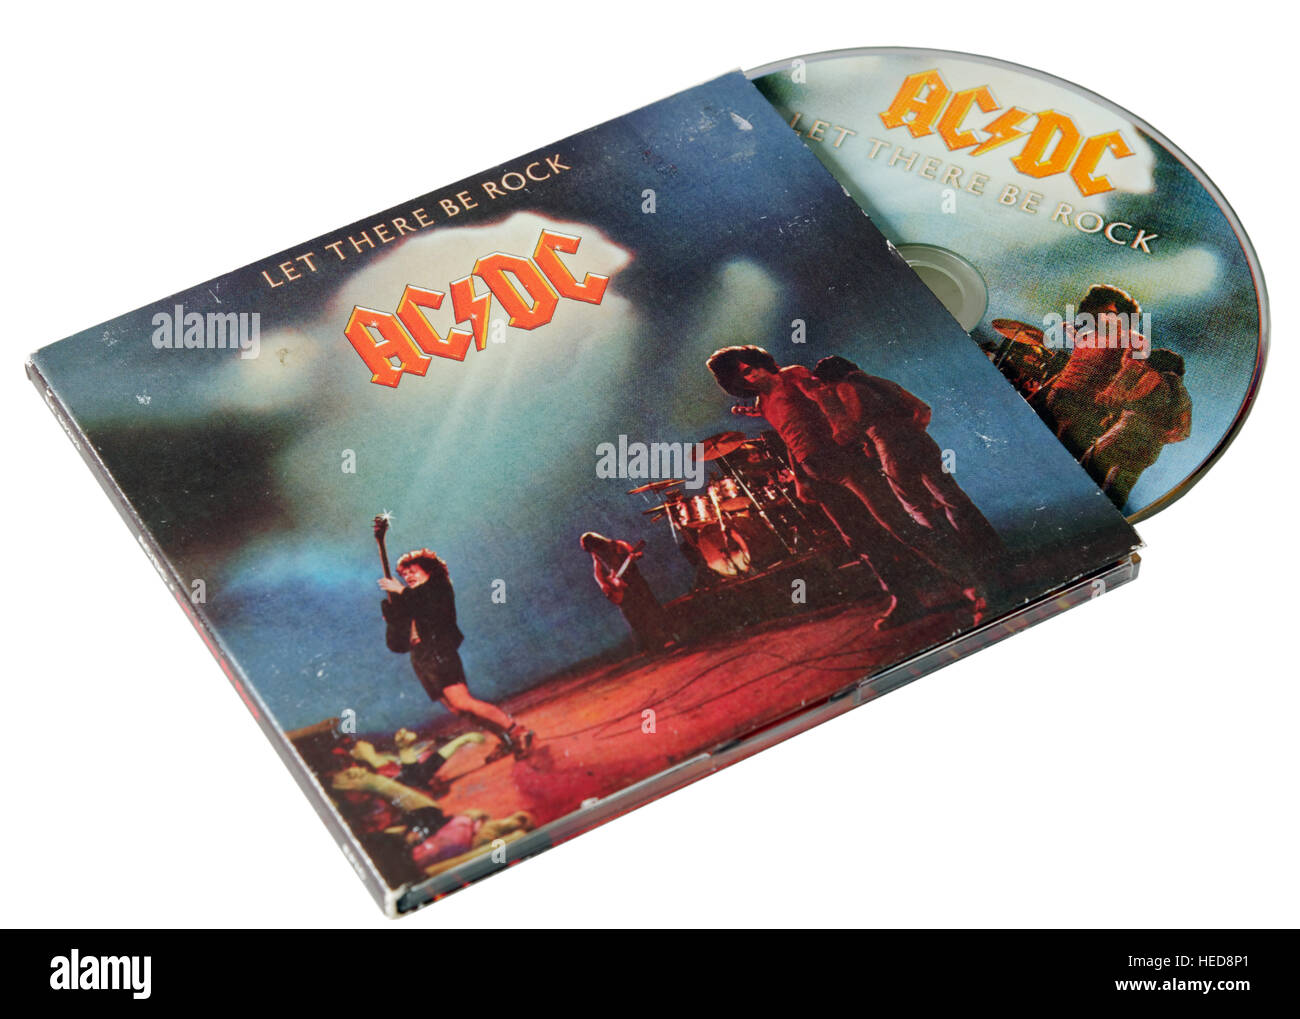 AC/DC Let There Be Rock CD - Stock Image